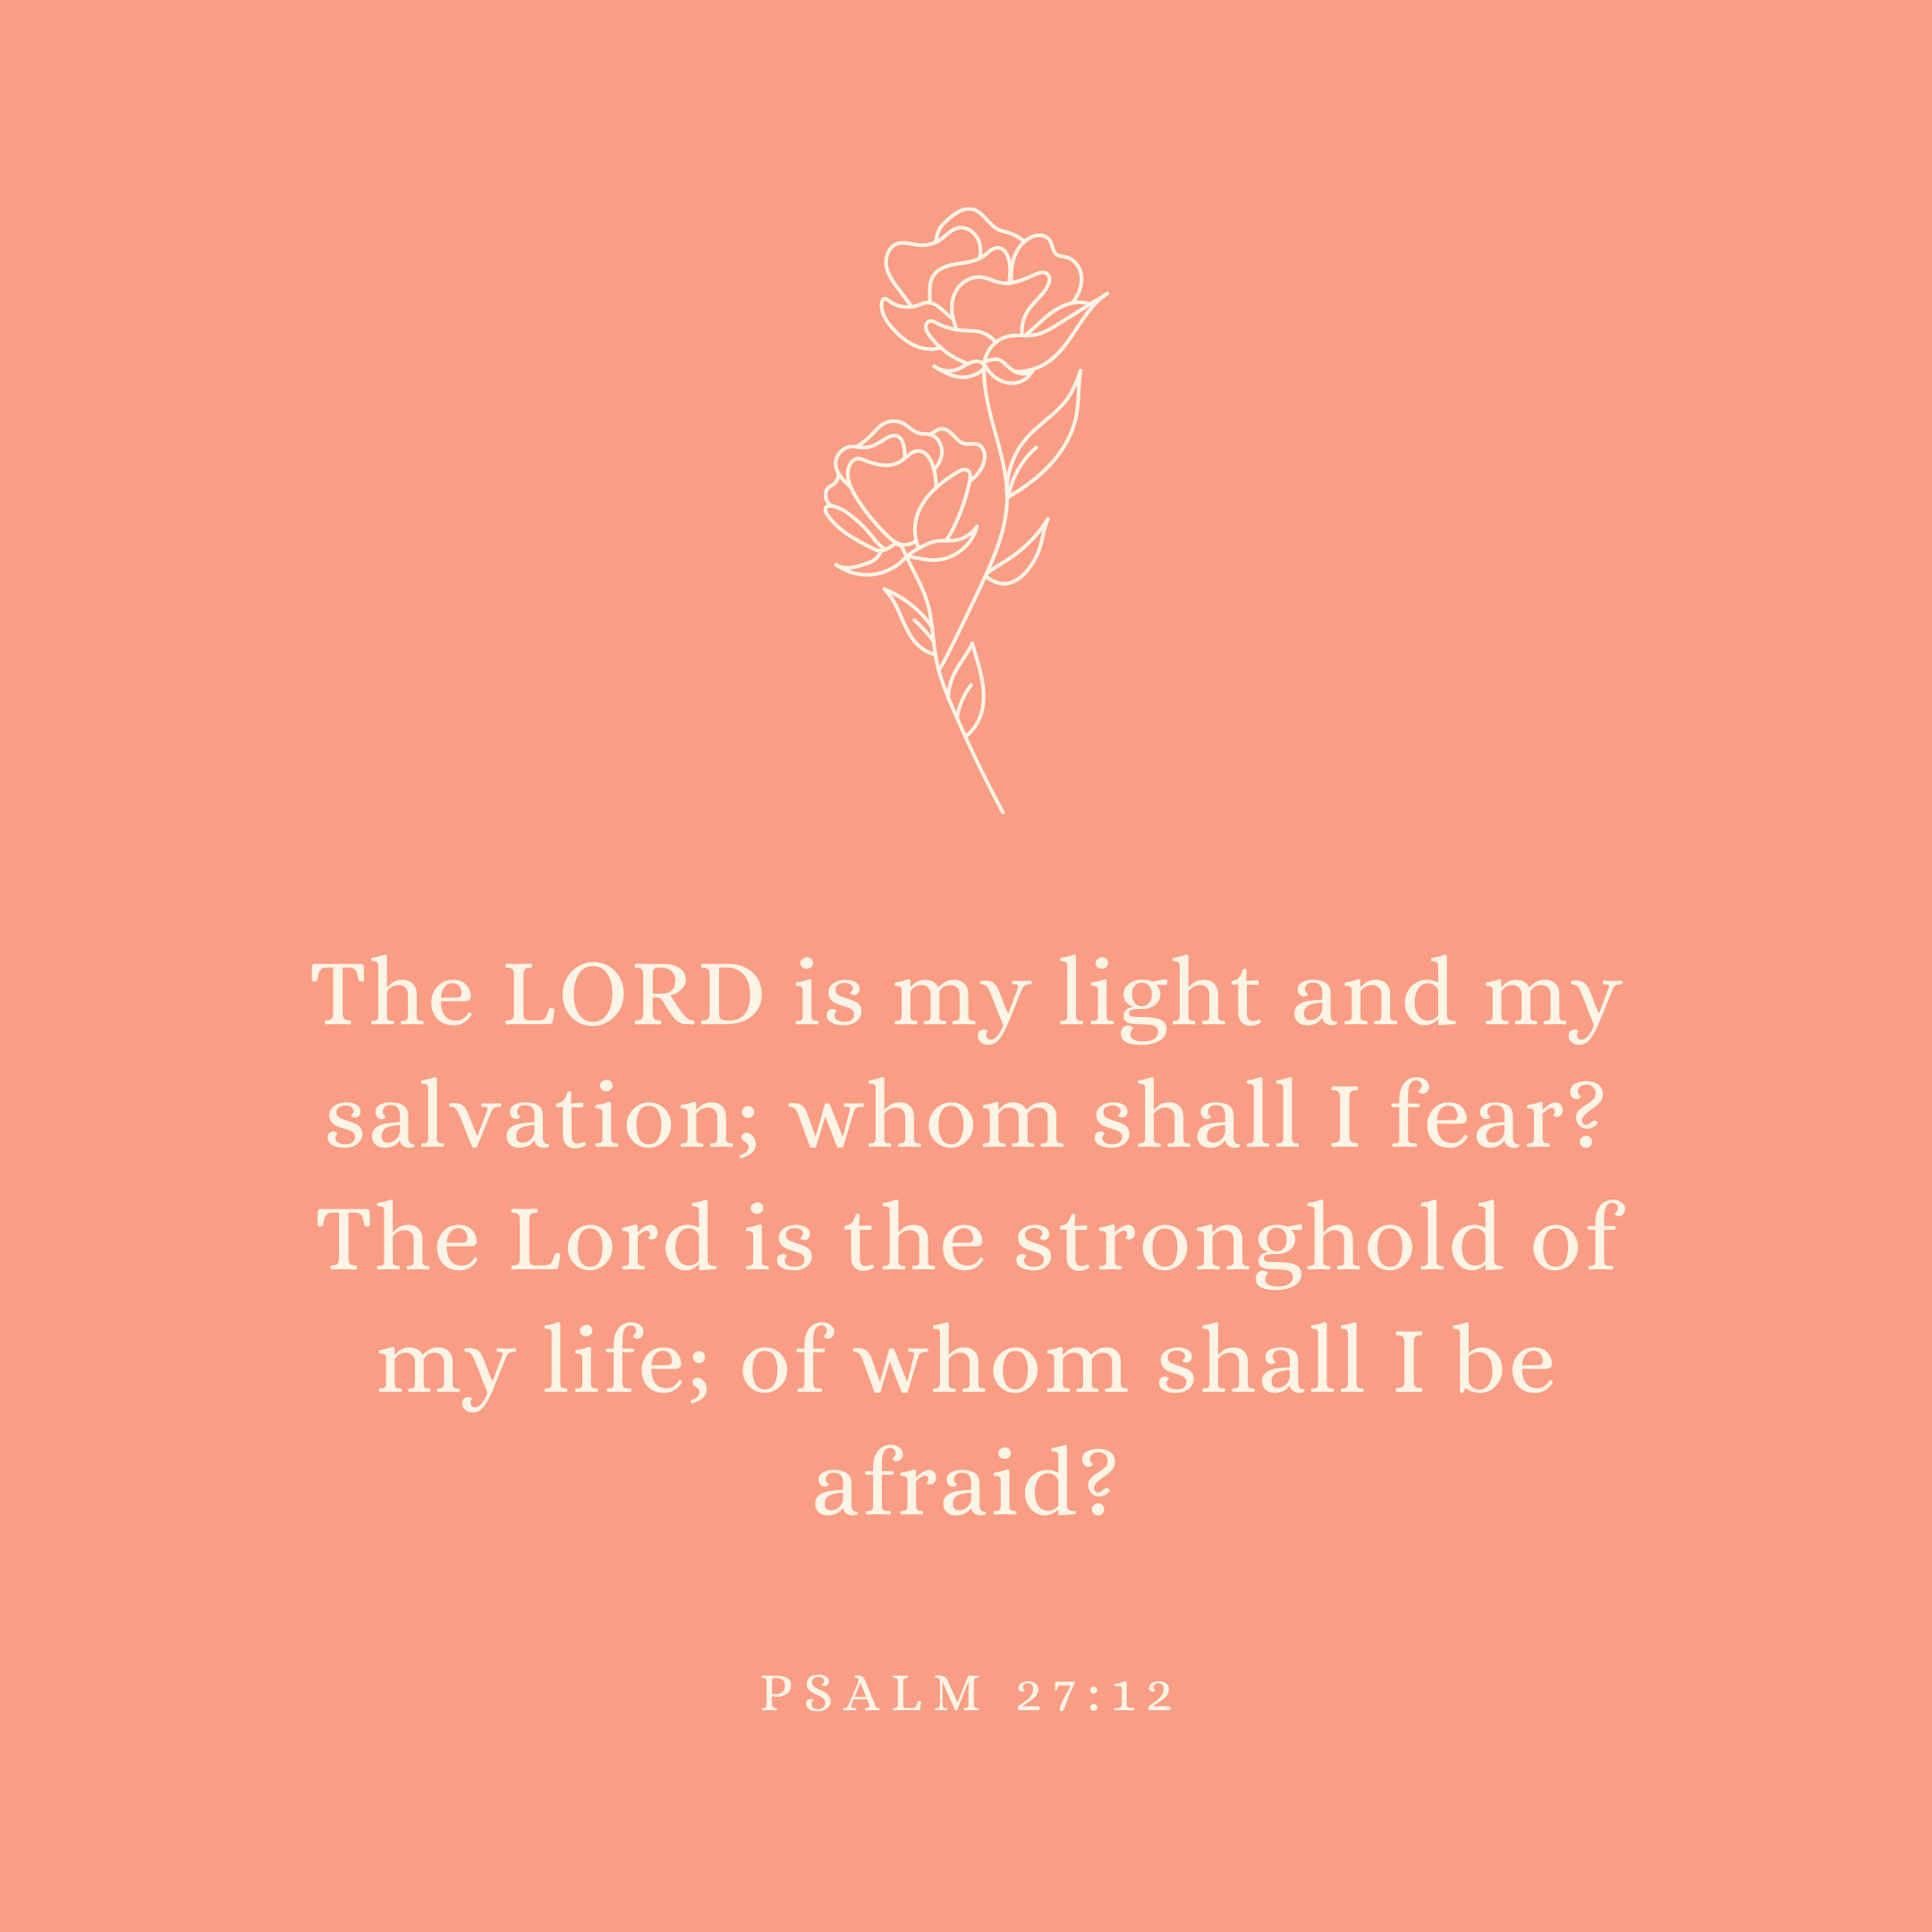 Psalm 27:12 The LORD is my light and my salvation; whom shall I fear? The Lord is the stronghold of my life; of whom shall I be afraid?